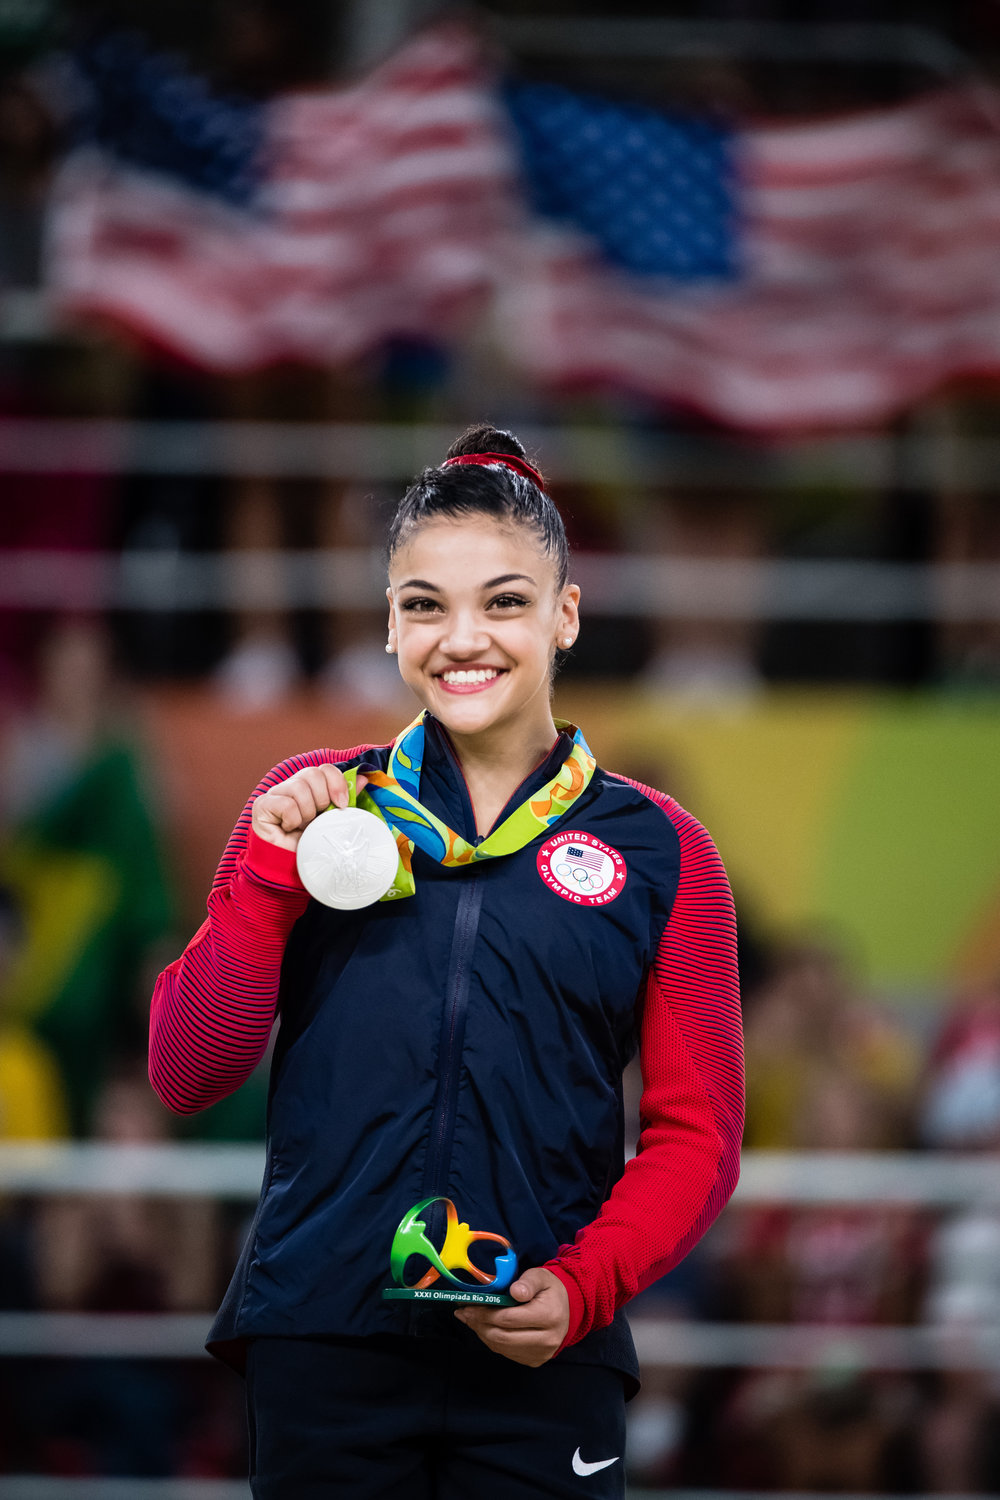 Laurie Hernandez - American gymnast and two time Olympic medalist